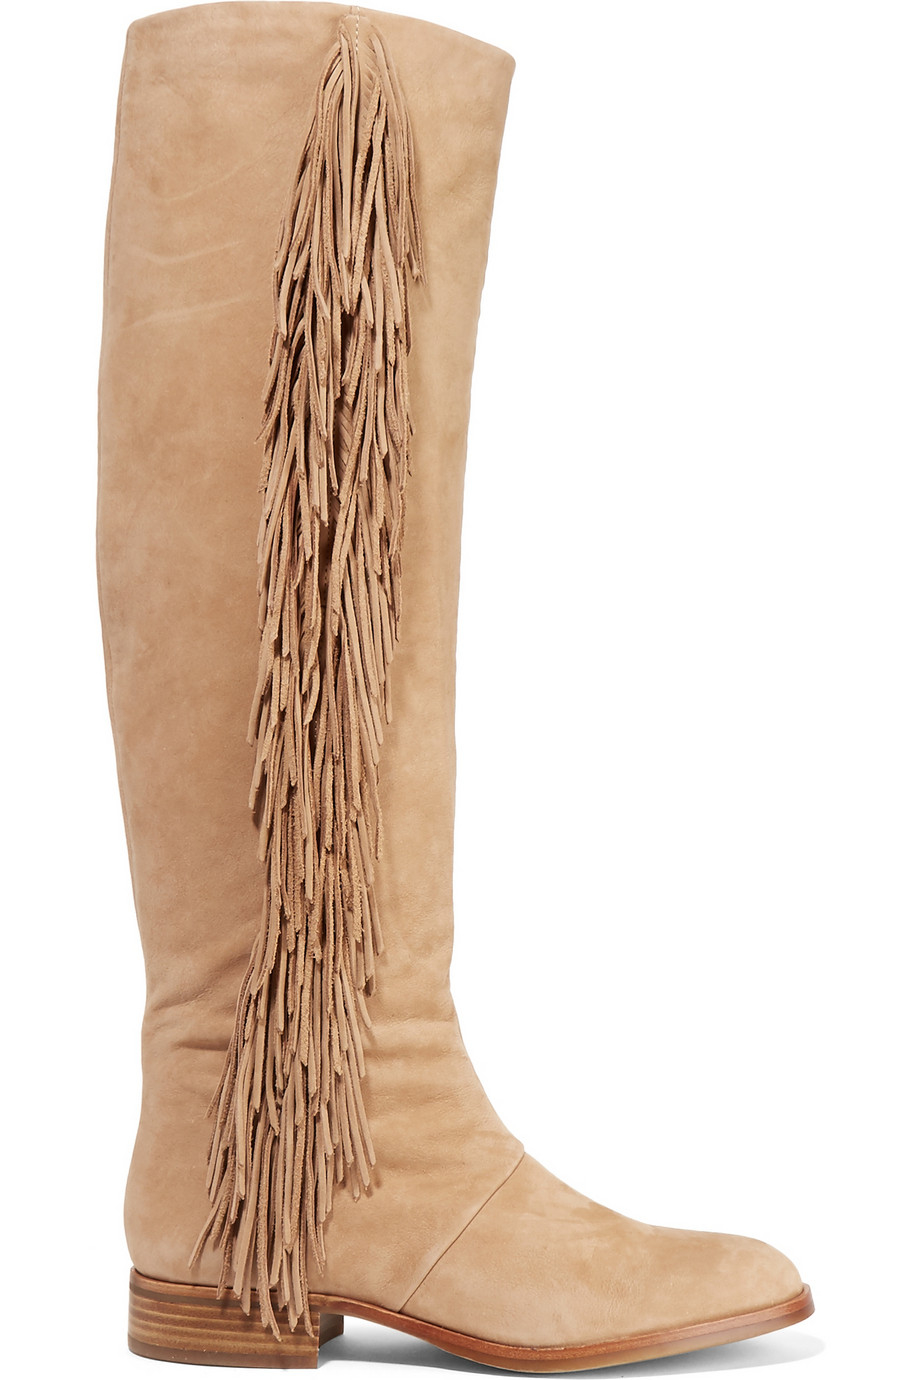 a4efb549c1012 Sam Edelman Josephine Fringed Suede Boots in Natural - Lyst